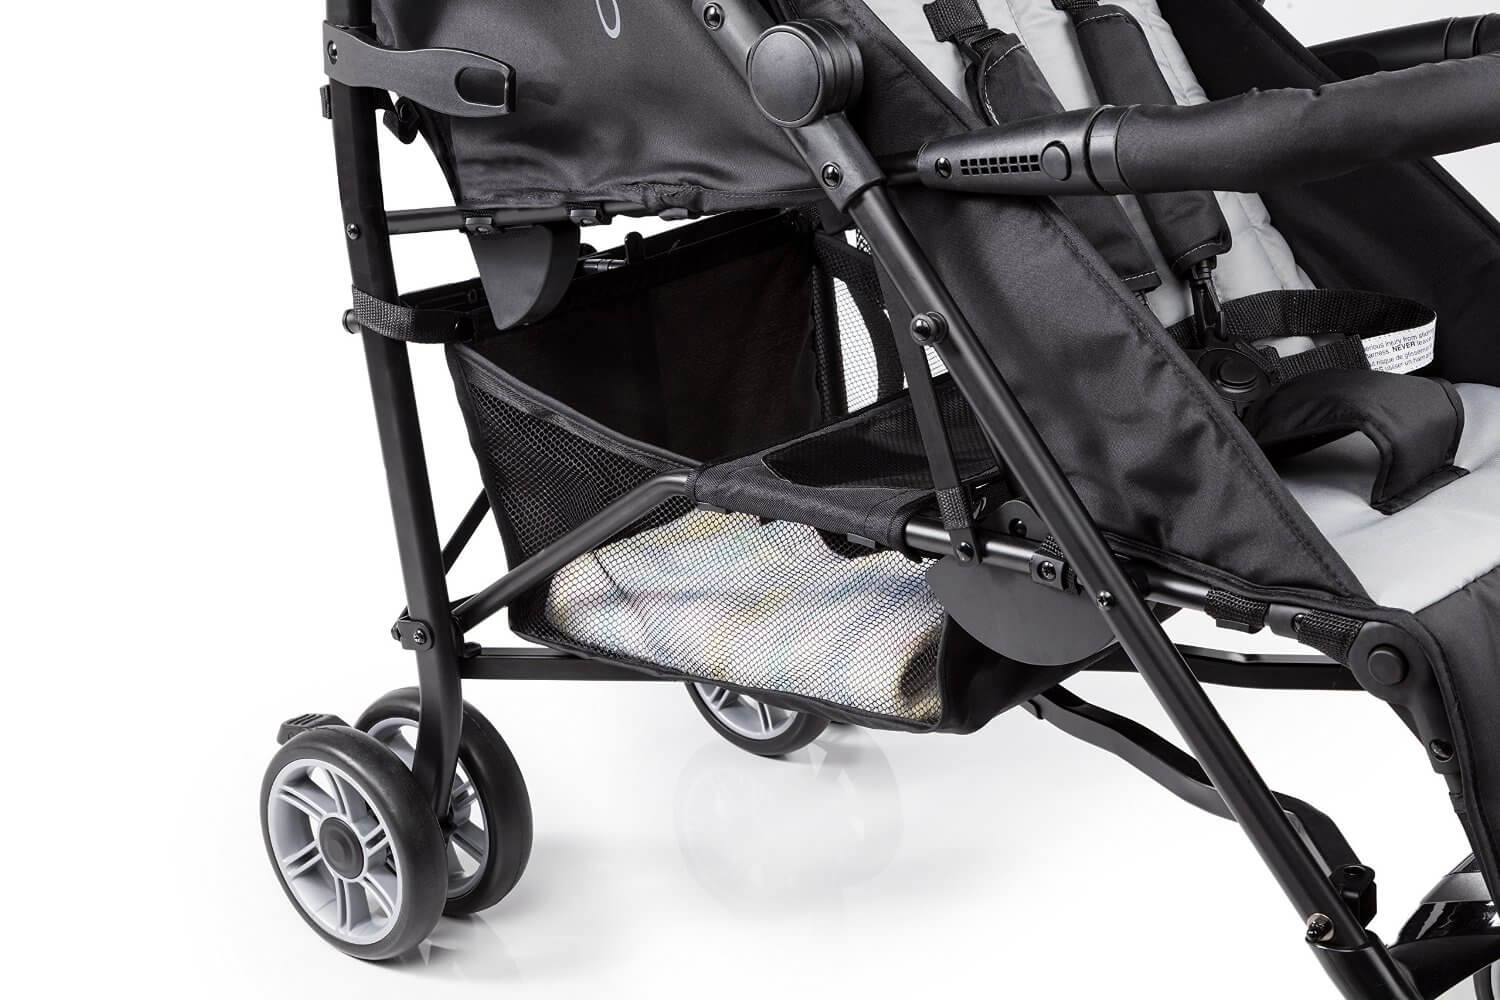 Summer Infant 3D Two Double Convenience Stroller Review - big storage space for shopping , grocery and baby items